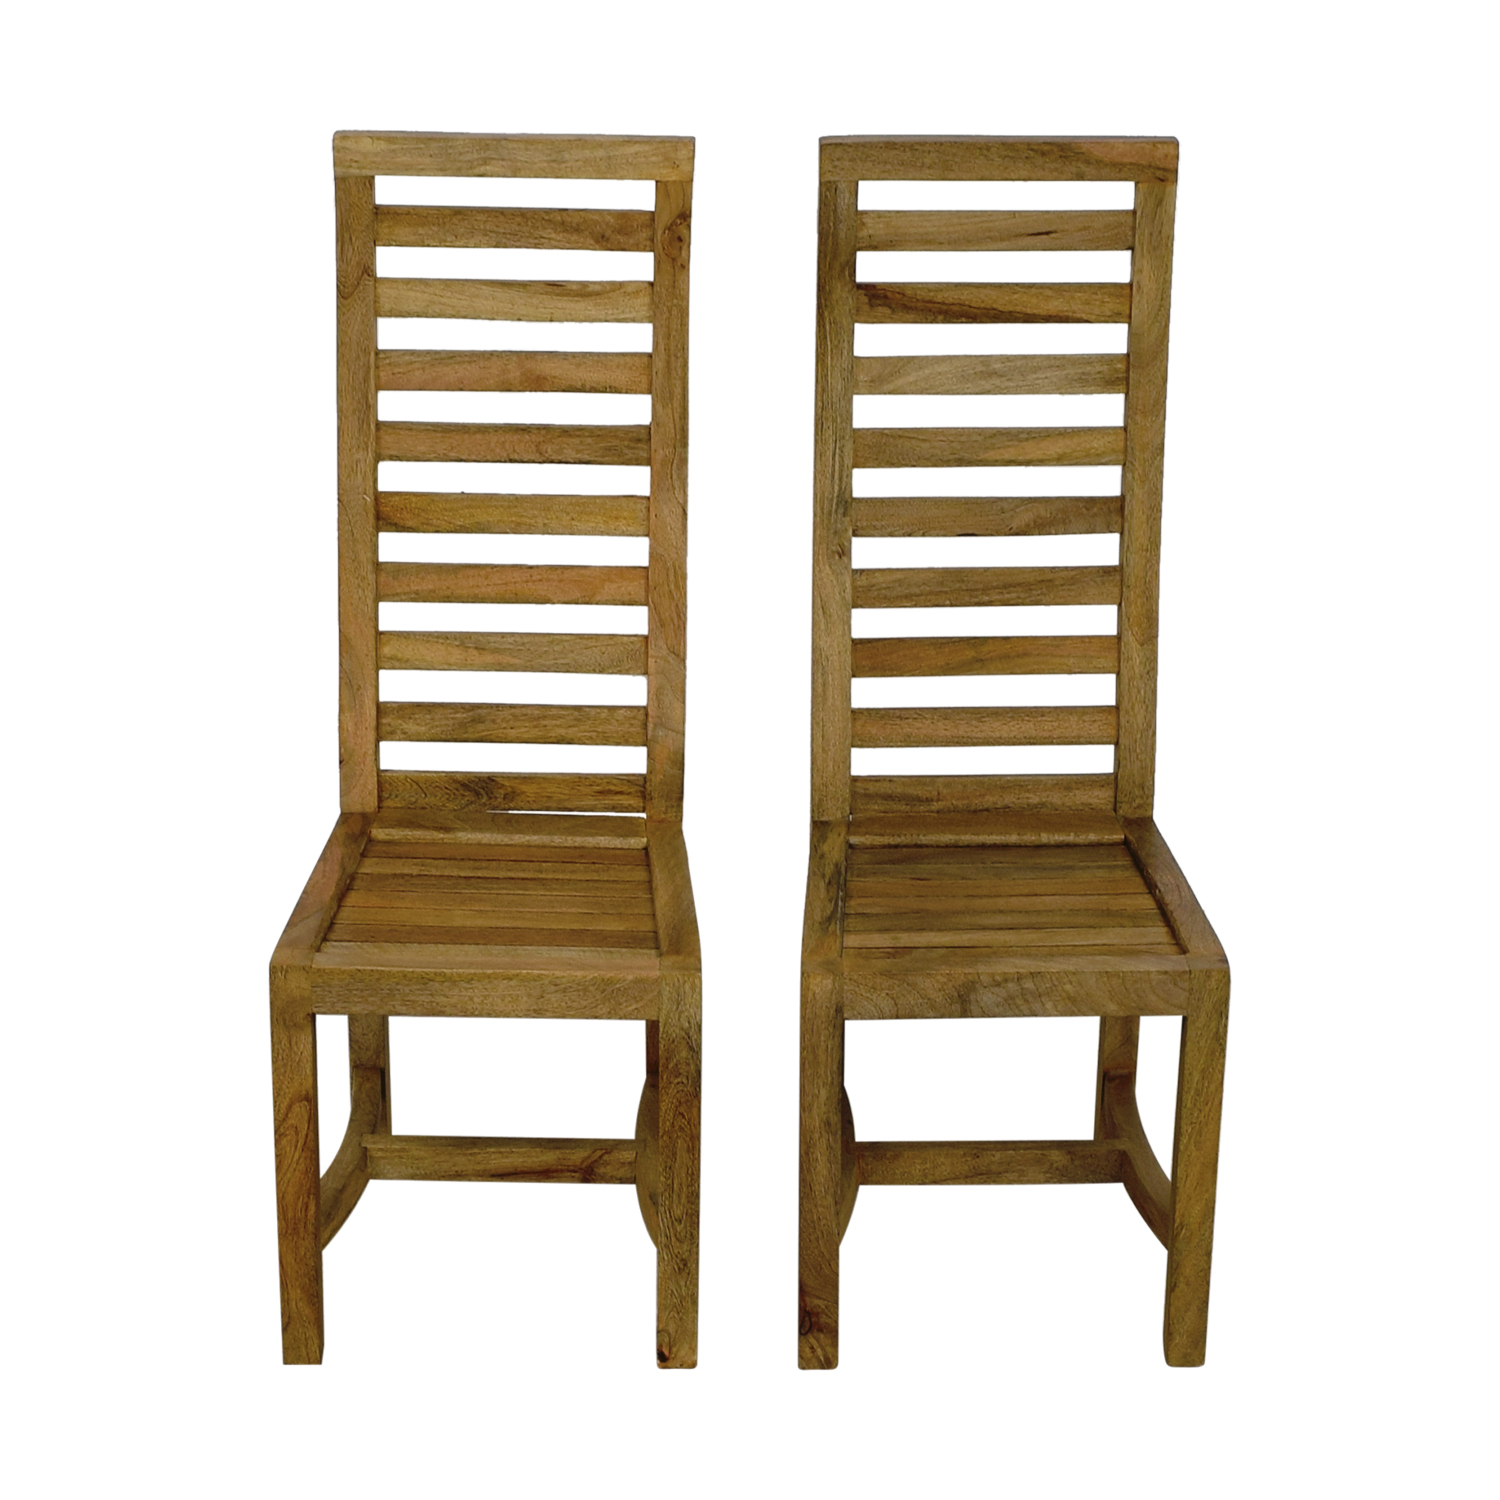 Nadeau Nadeau Rustic High Back Wooden Chairs dimensions